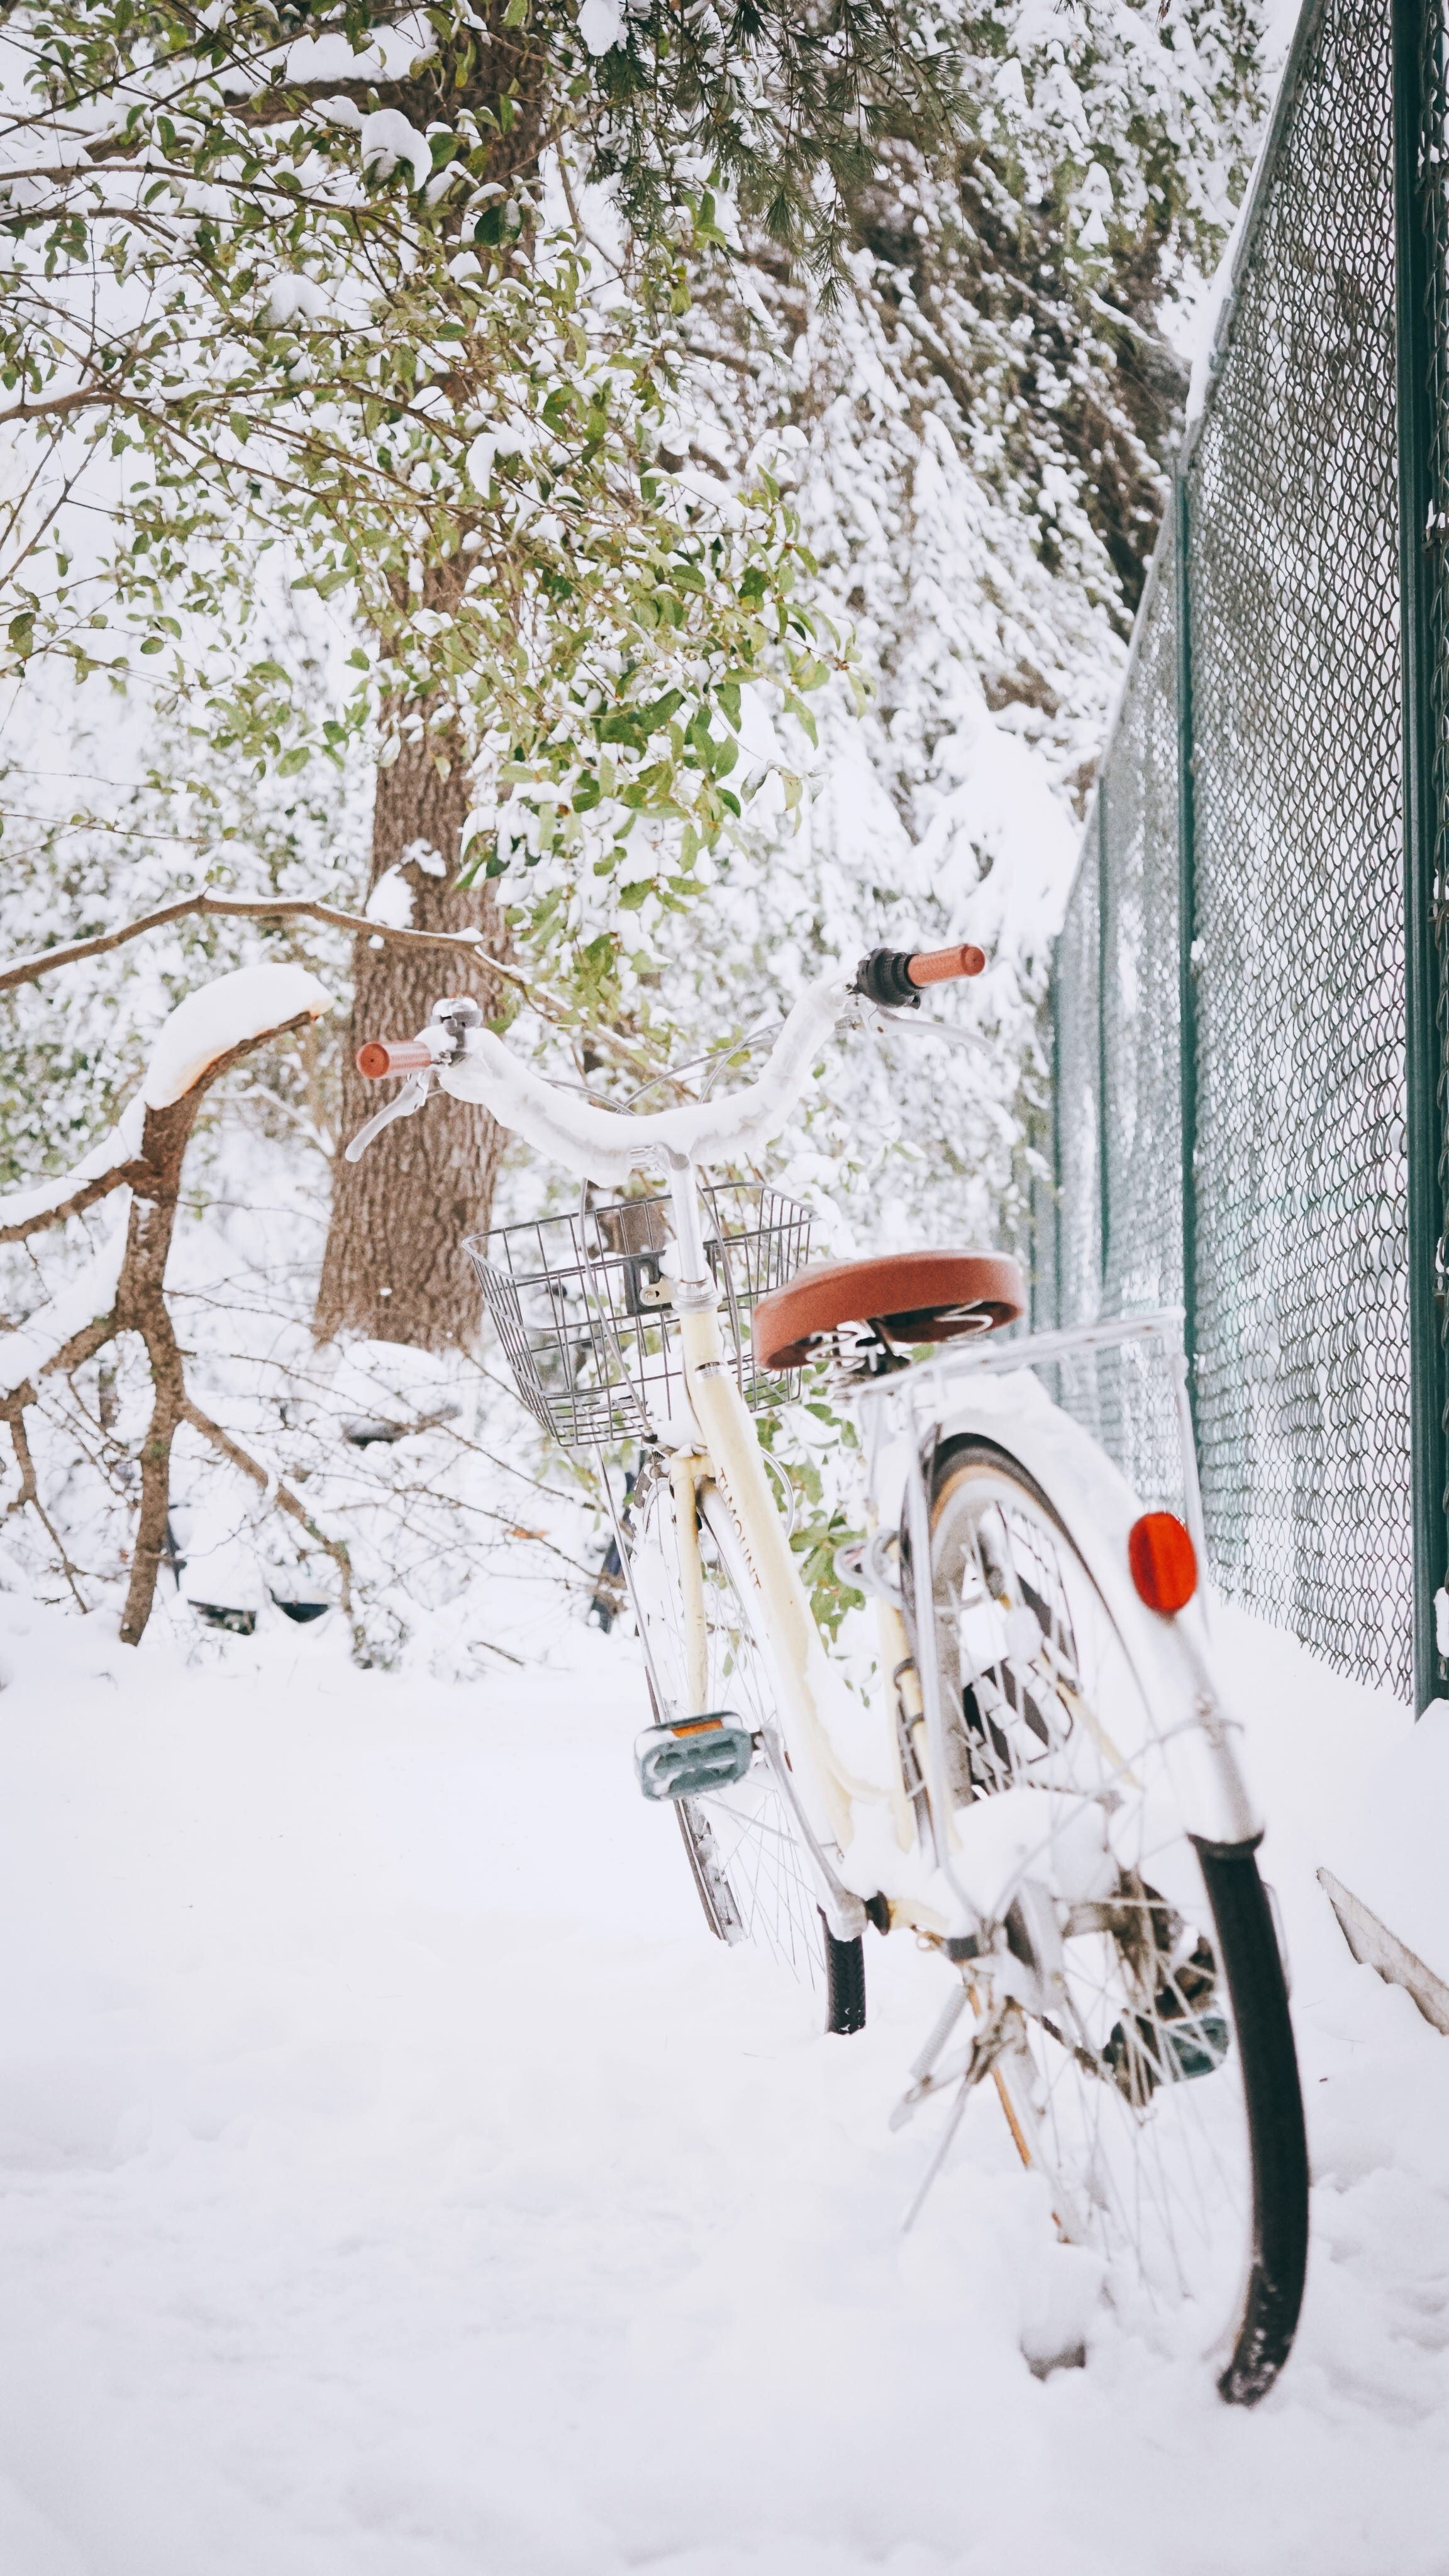 white and gray bicycle near green cyclone fence